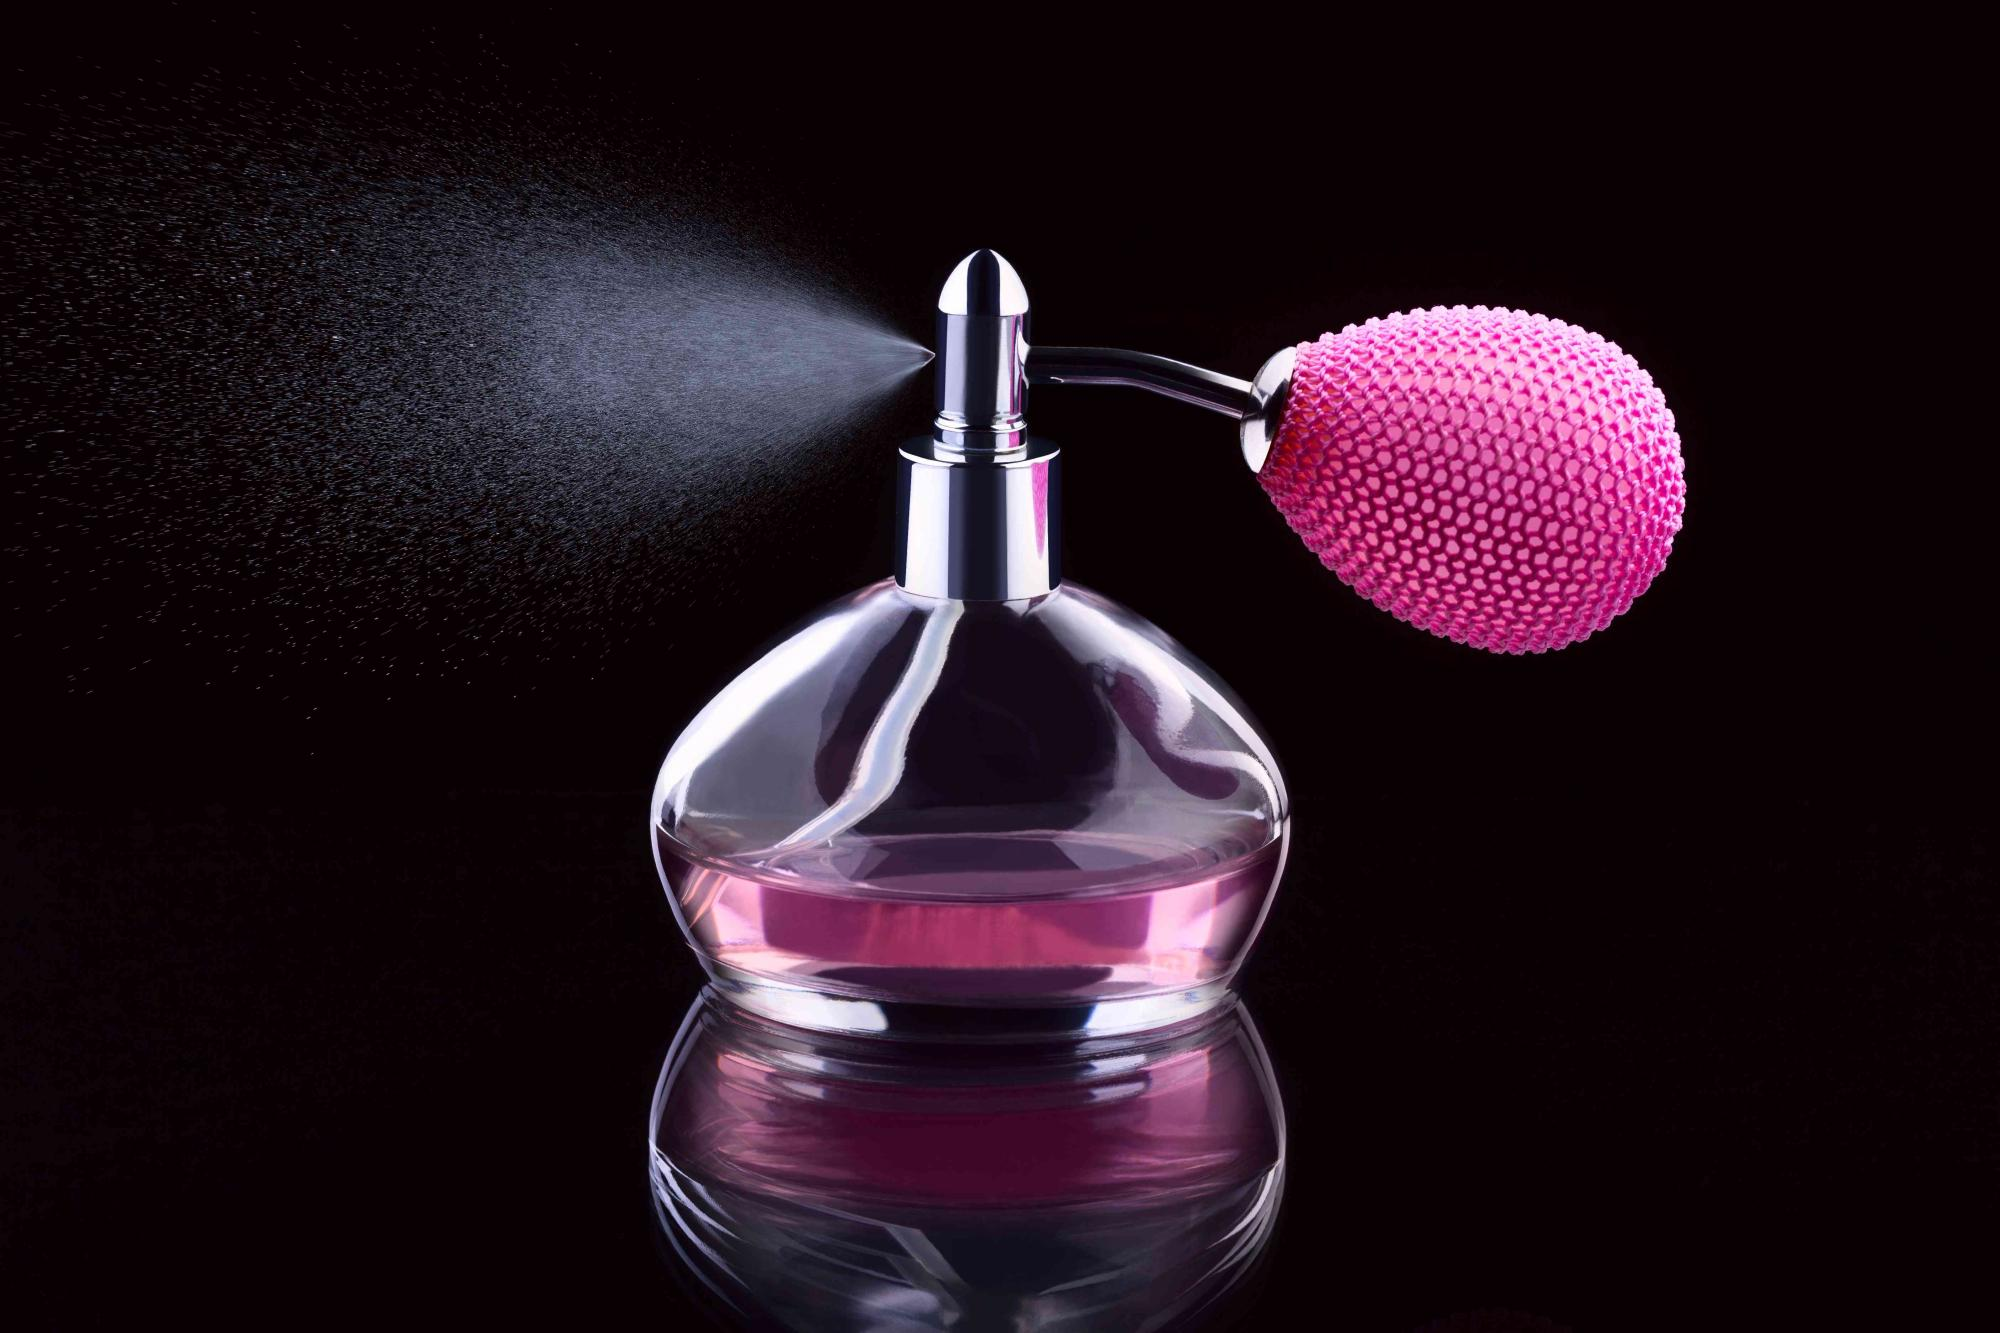 Get it out online perfume shop to buy fragrances in Lagos Nigeria